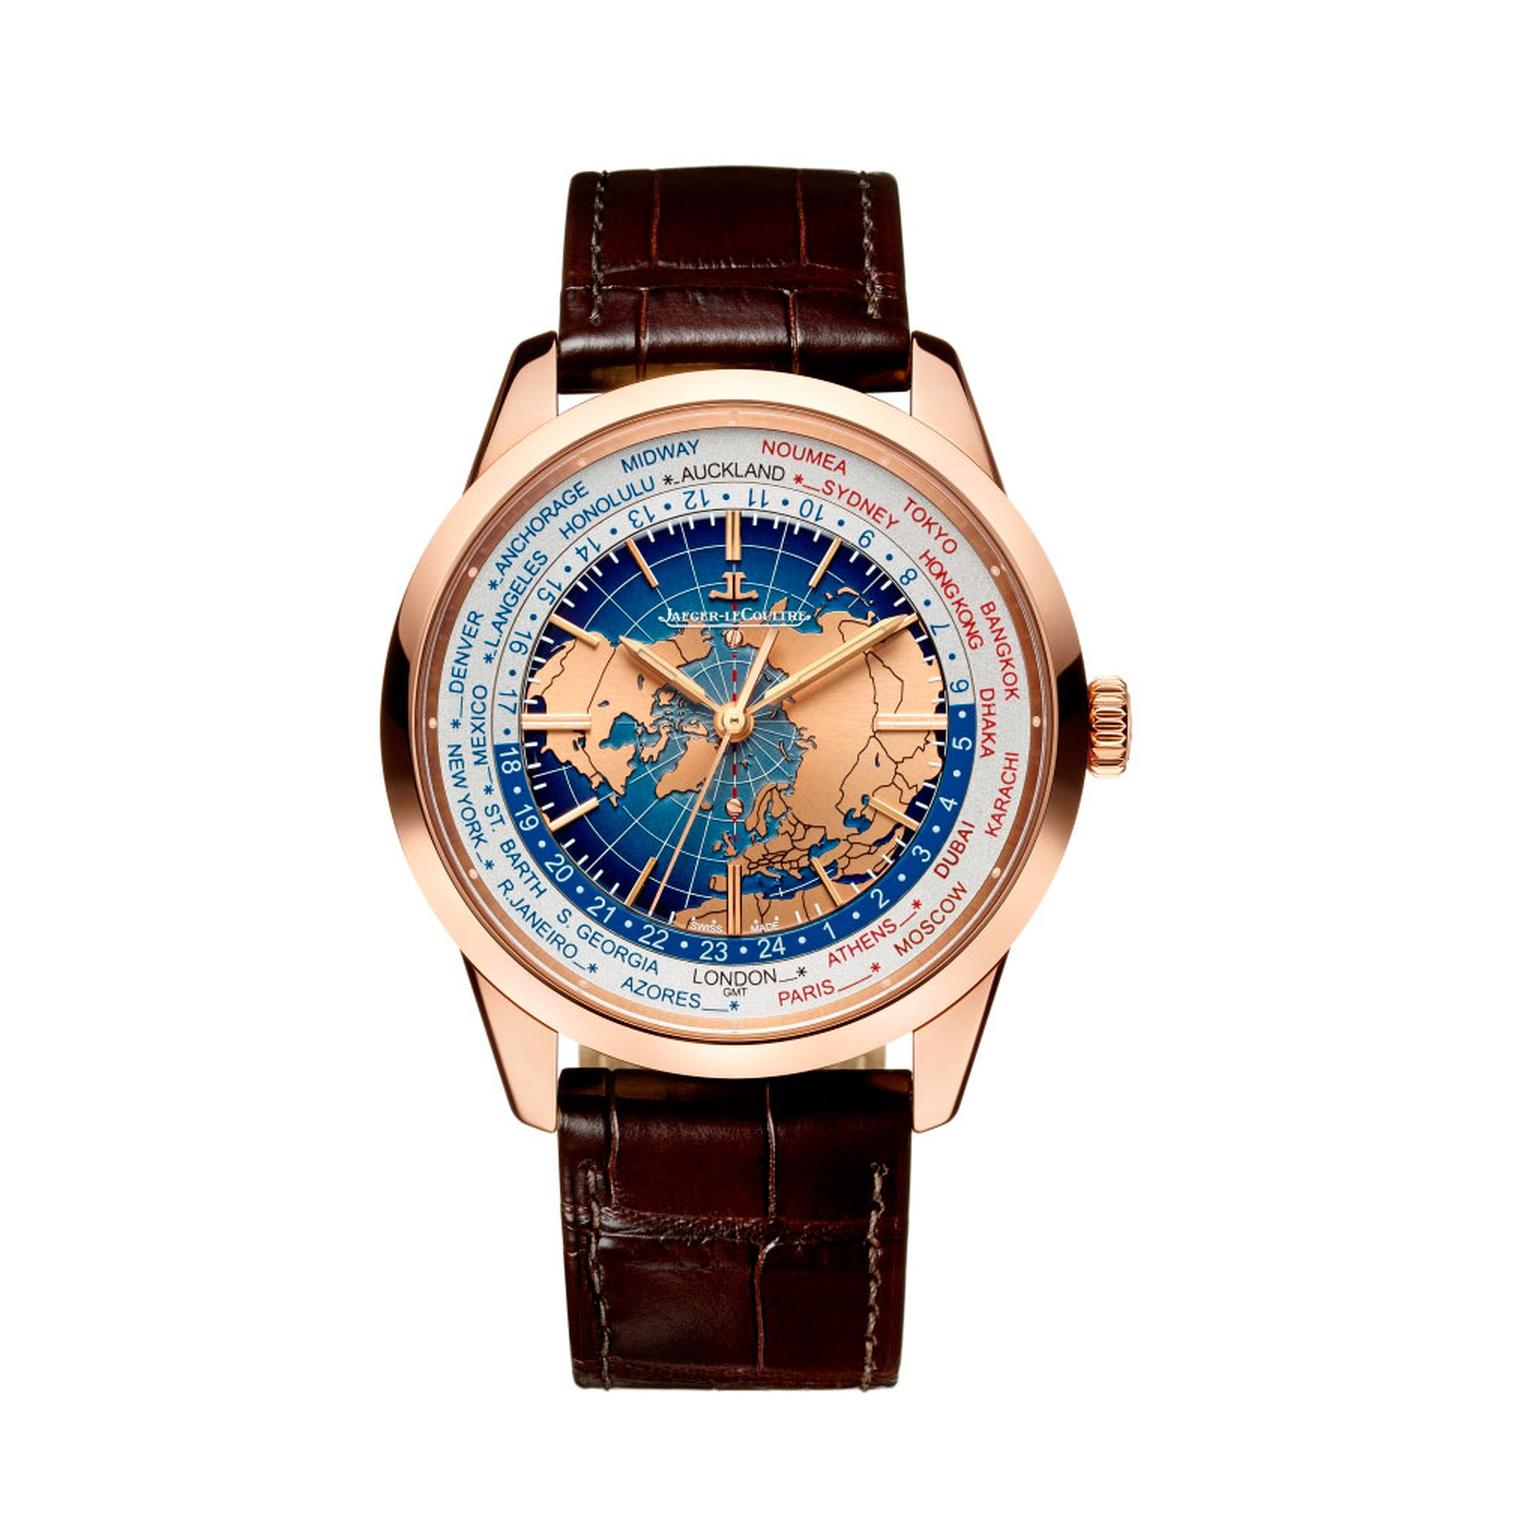 Jaeger-LeCoultre Geophysic Universal Time PG watch